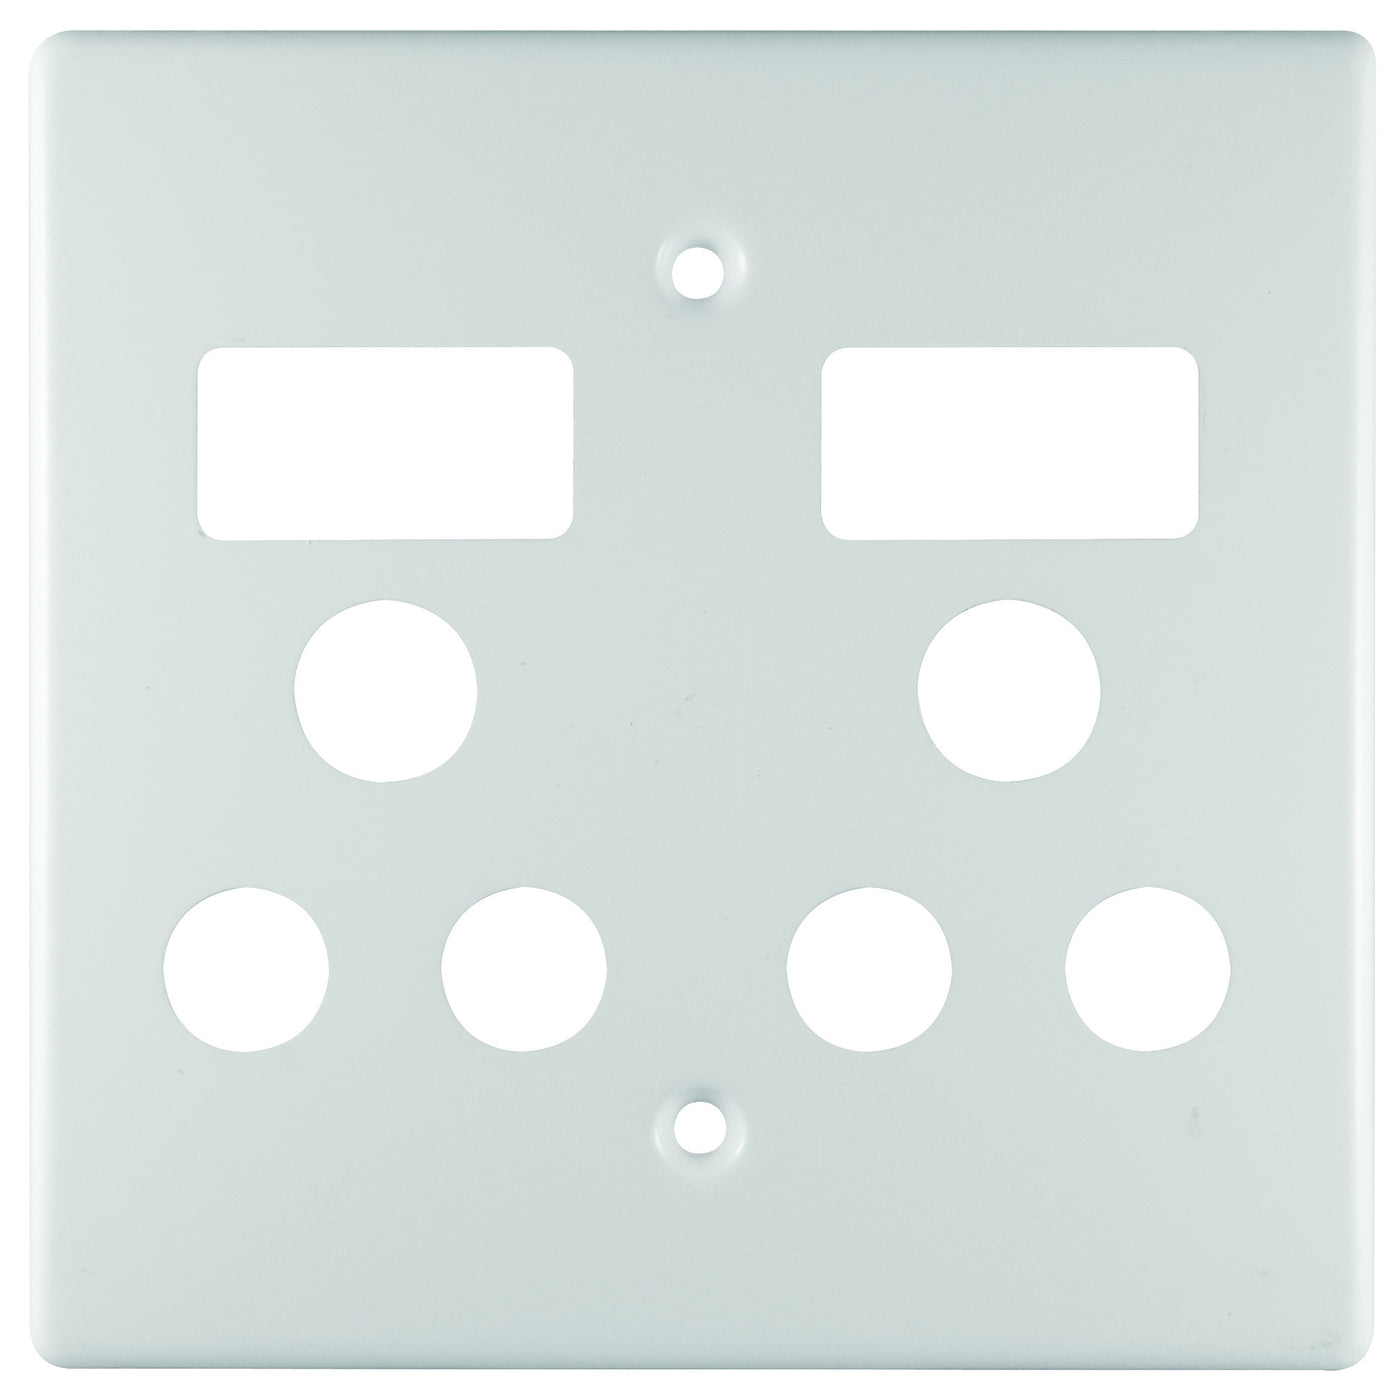 CRABTREE CLASSIC DOUBLE SOCKET COVERPLATE PLASTIC 4X4  sc 1 st  Dynamic Distributors & CRABTREE CLASSIC DOUBLE SOCKET COVERPLATE PLASTIC 4X4 \u2013 Dynamic ...